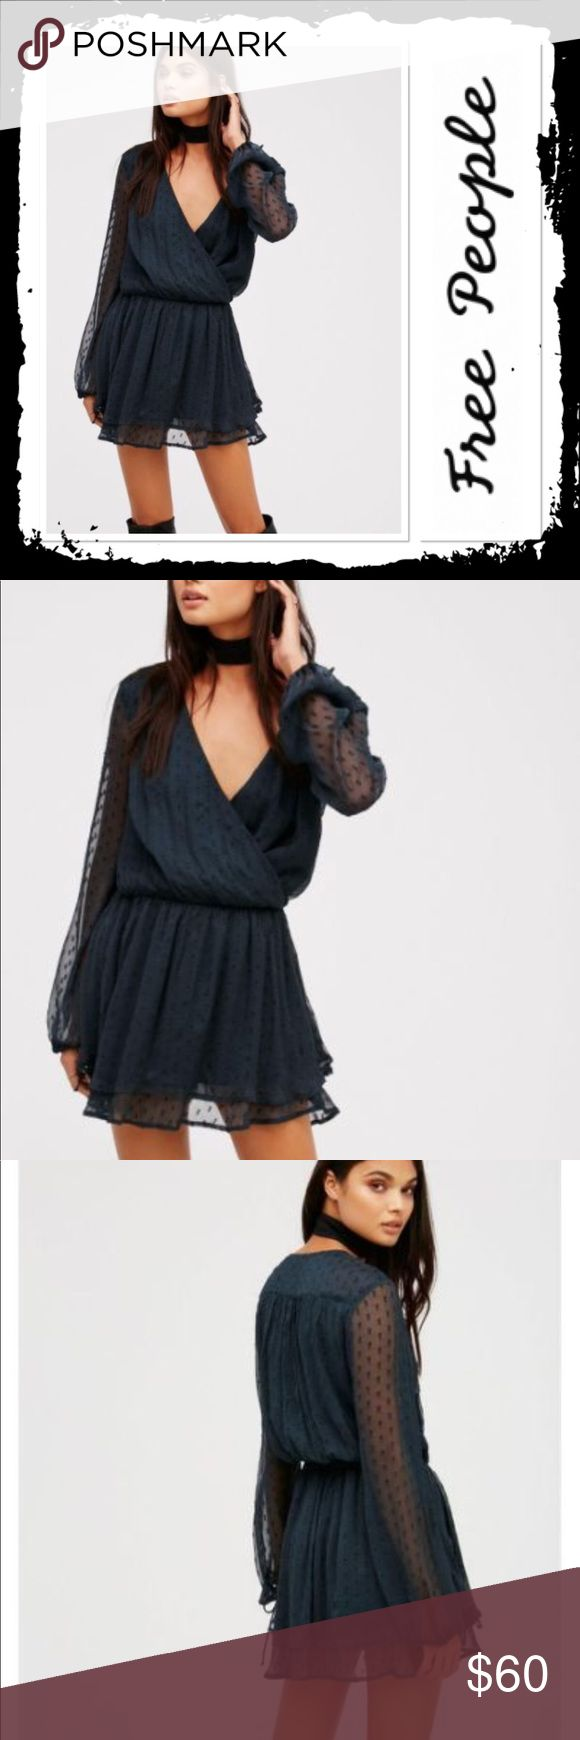 NWT Free People Daliah Mini Dress Gorgeous brand new with tags Holly Green Mini Dress with sheer sleeves a deep V neck and tiered bottom Free People Dresses Mini